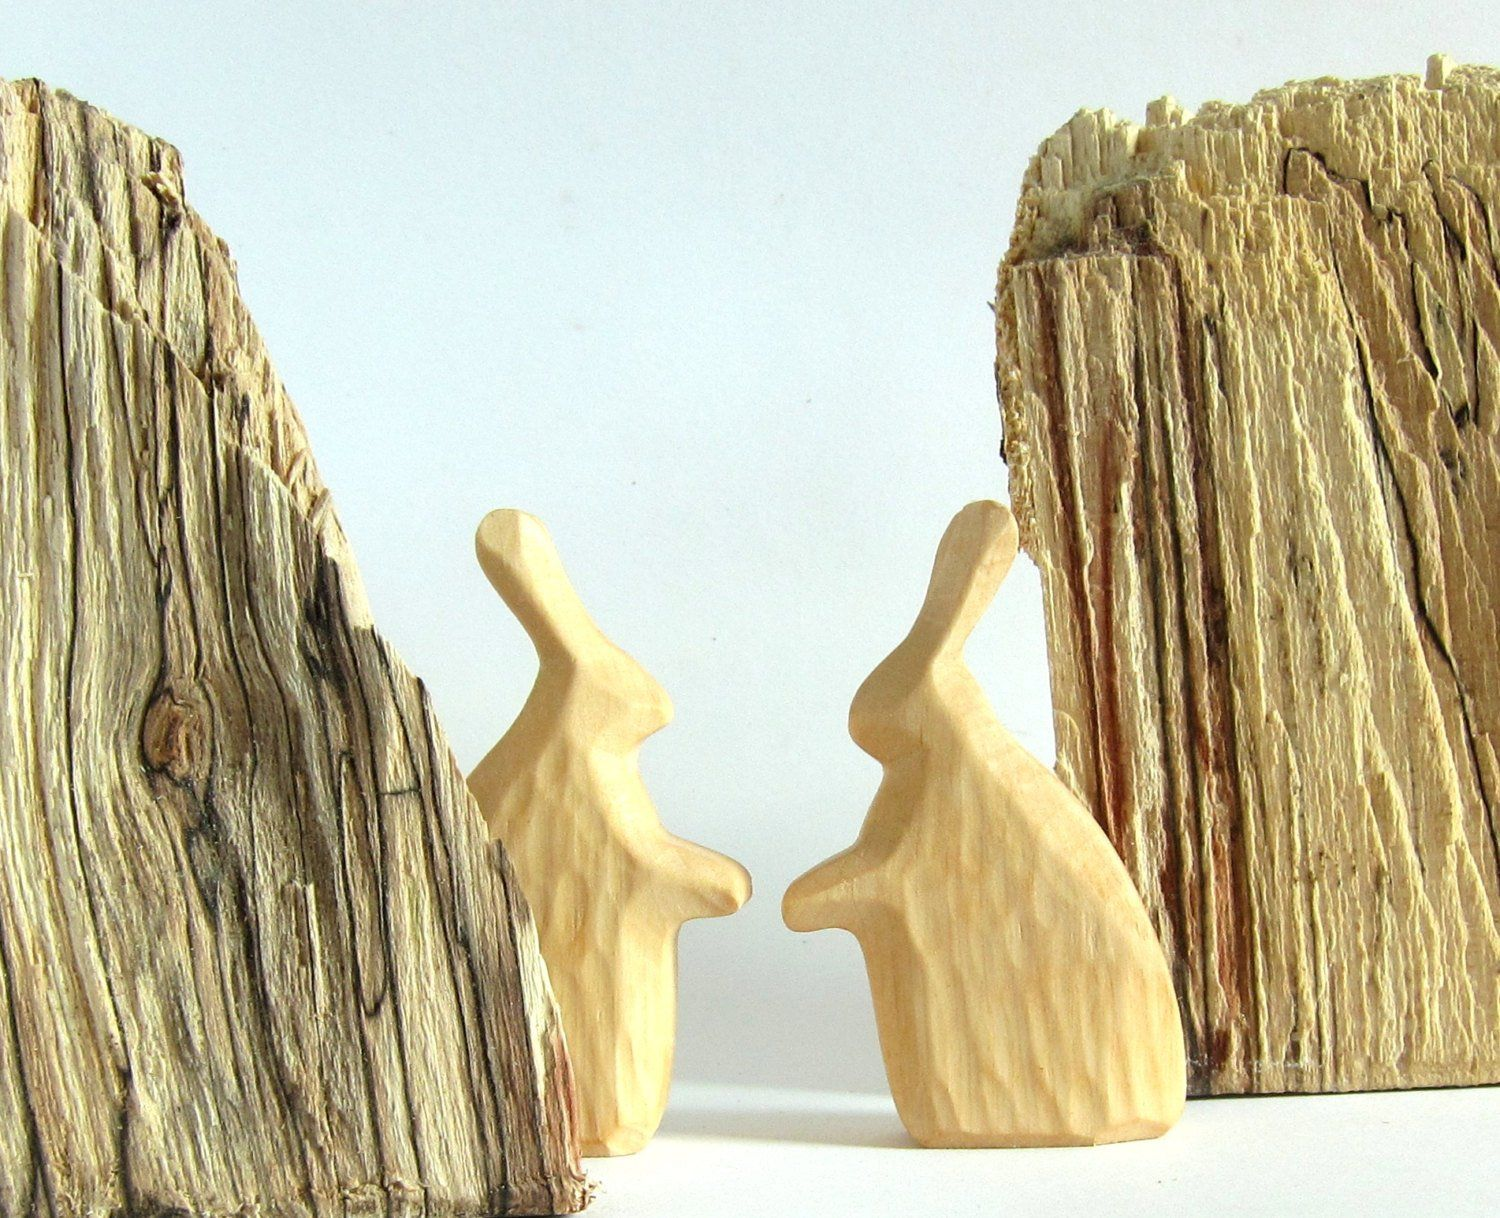 Holzküche Waldorf Primitive Art Naive Art Woodcarving Wooden Rabbit Carved